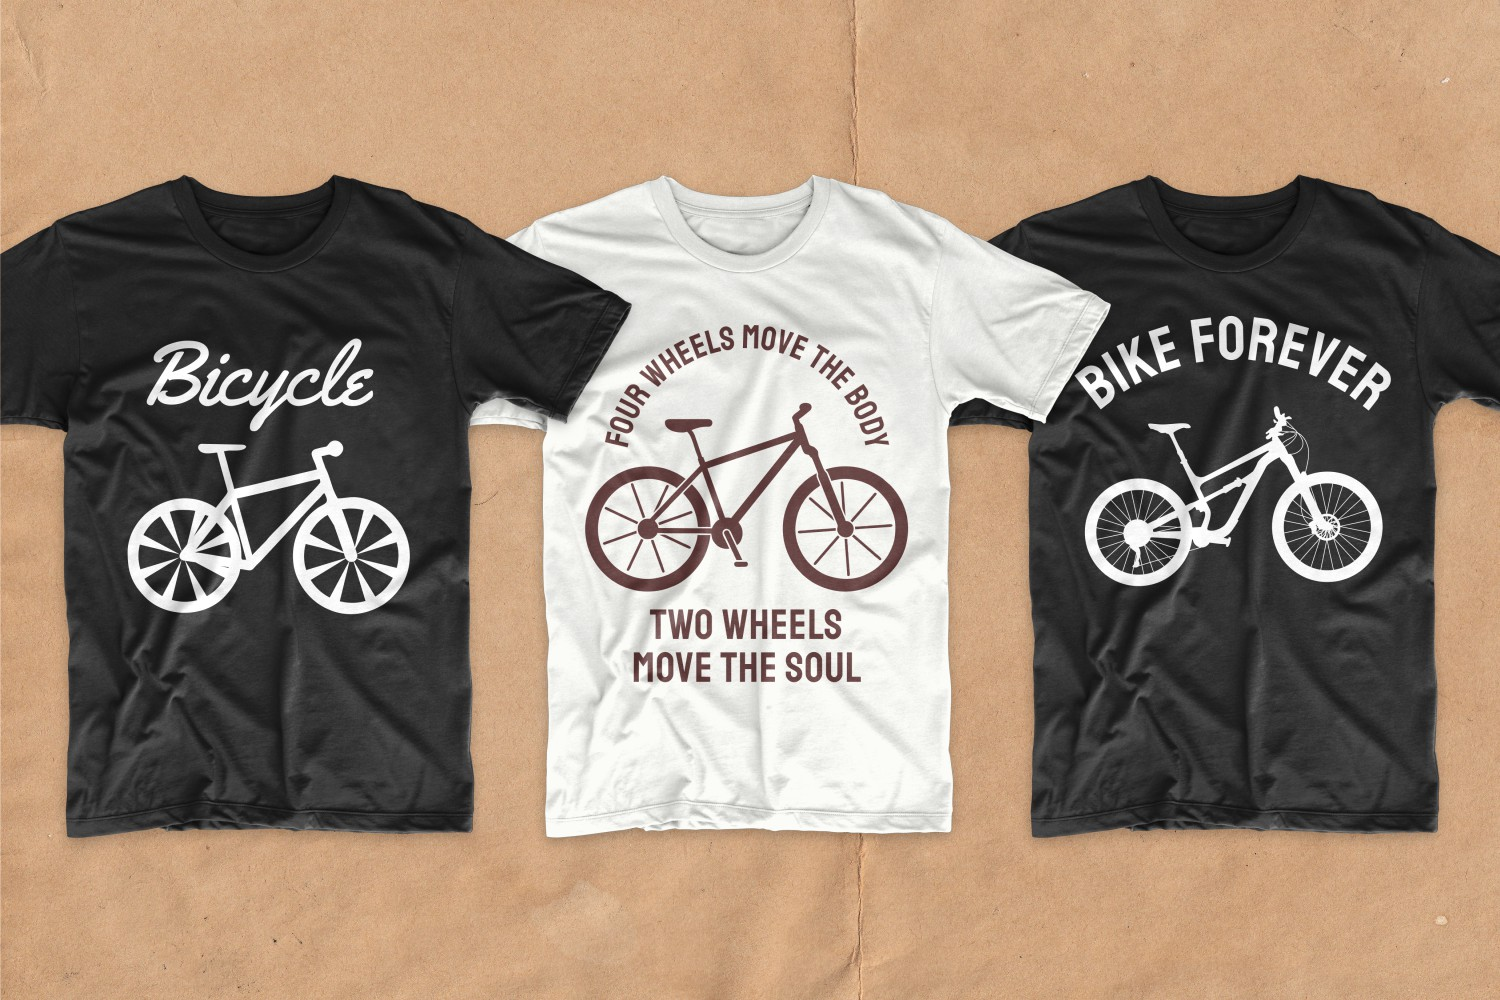 Two black and white T-shirts with bicycles.